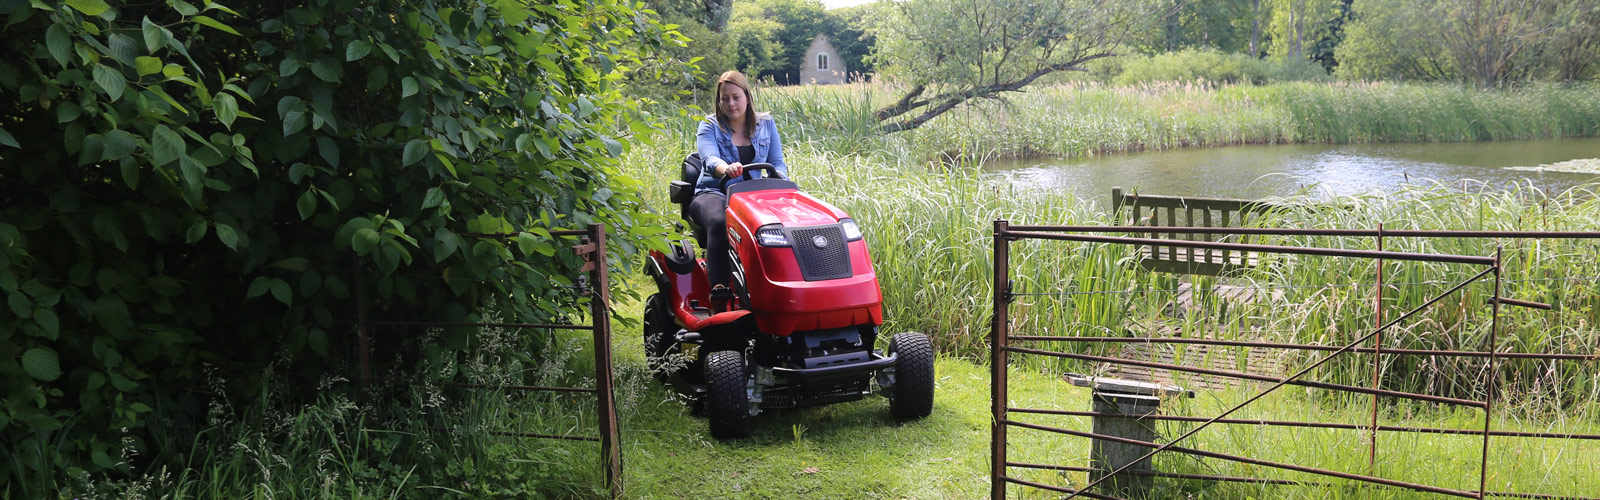 Countax B Series 4WD garden tractor riding mower with High Grass Mulch deck driving through gate by lake